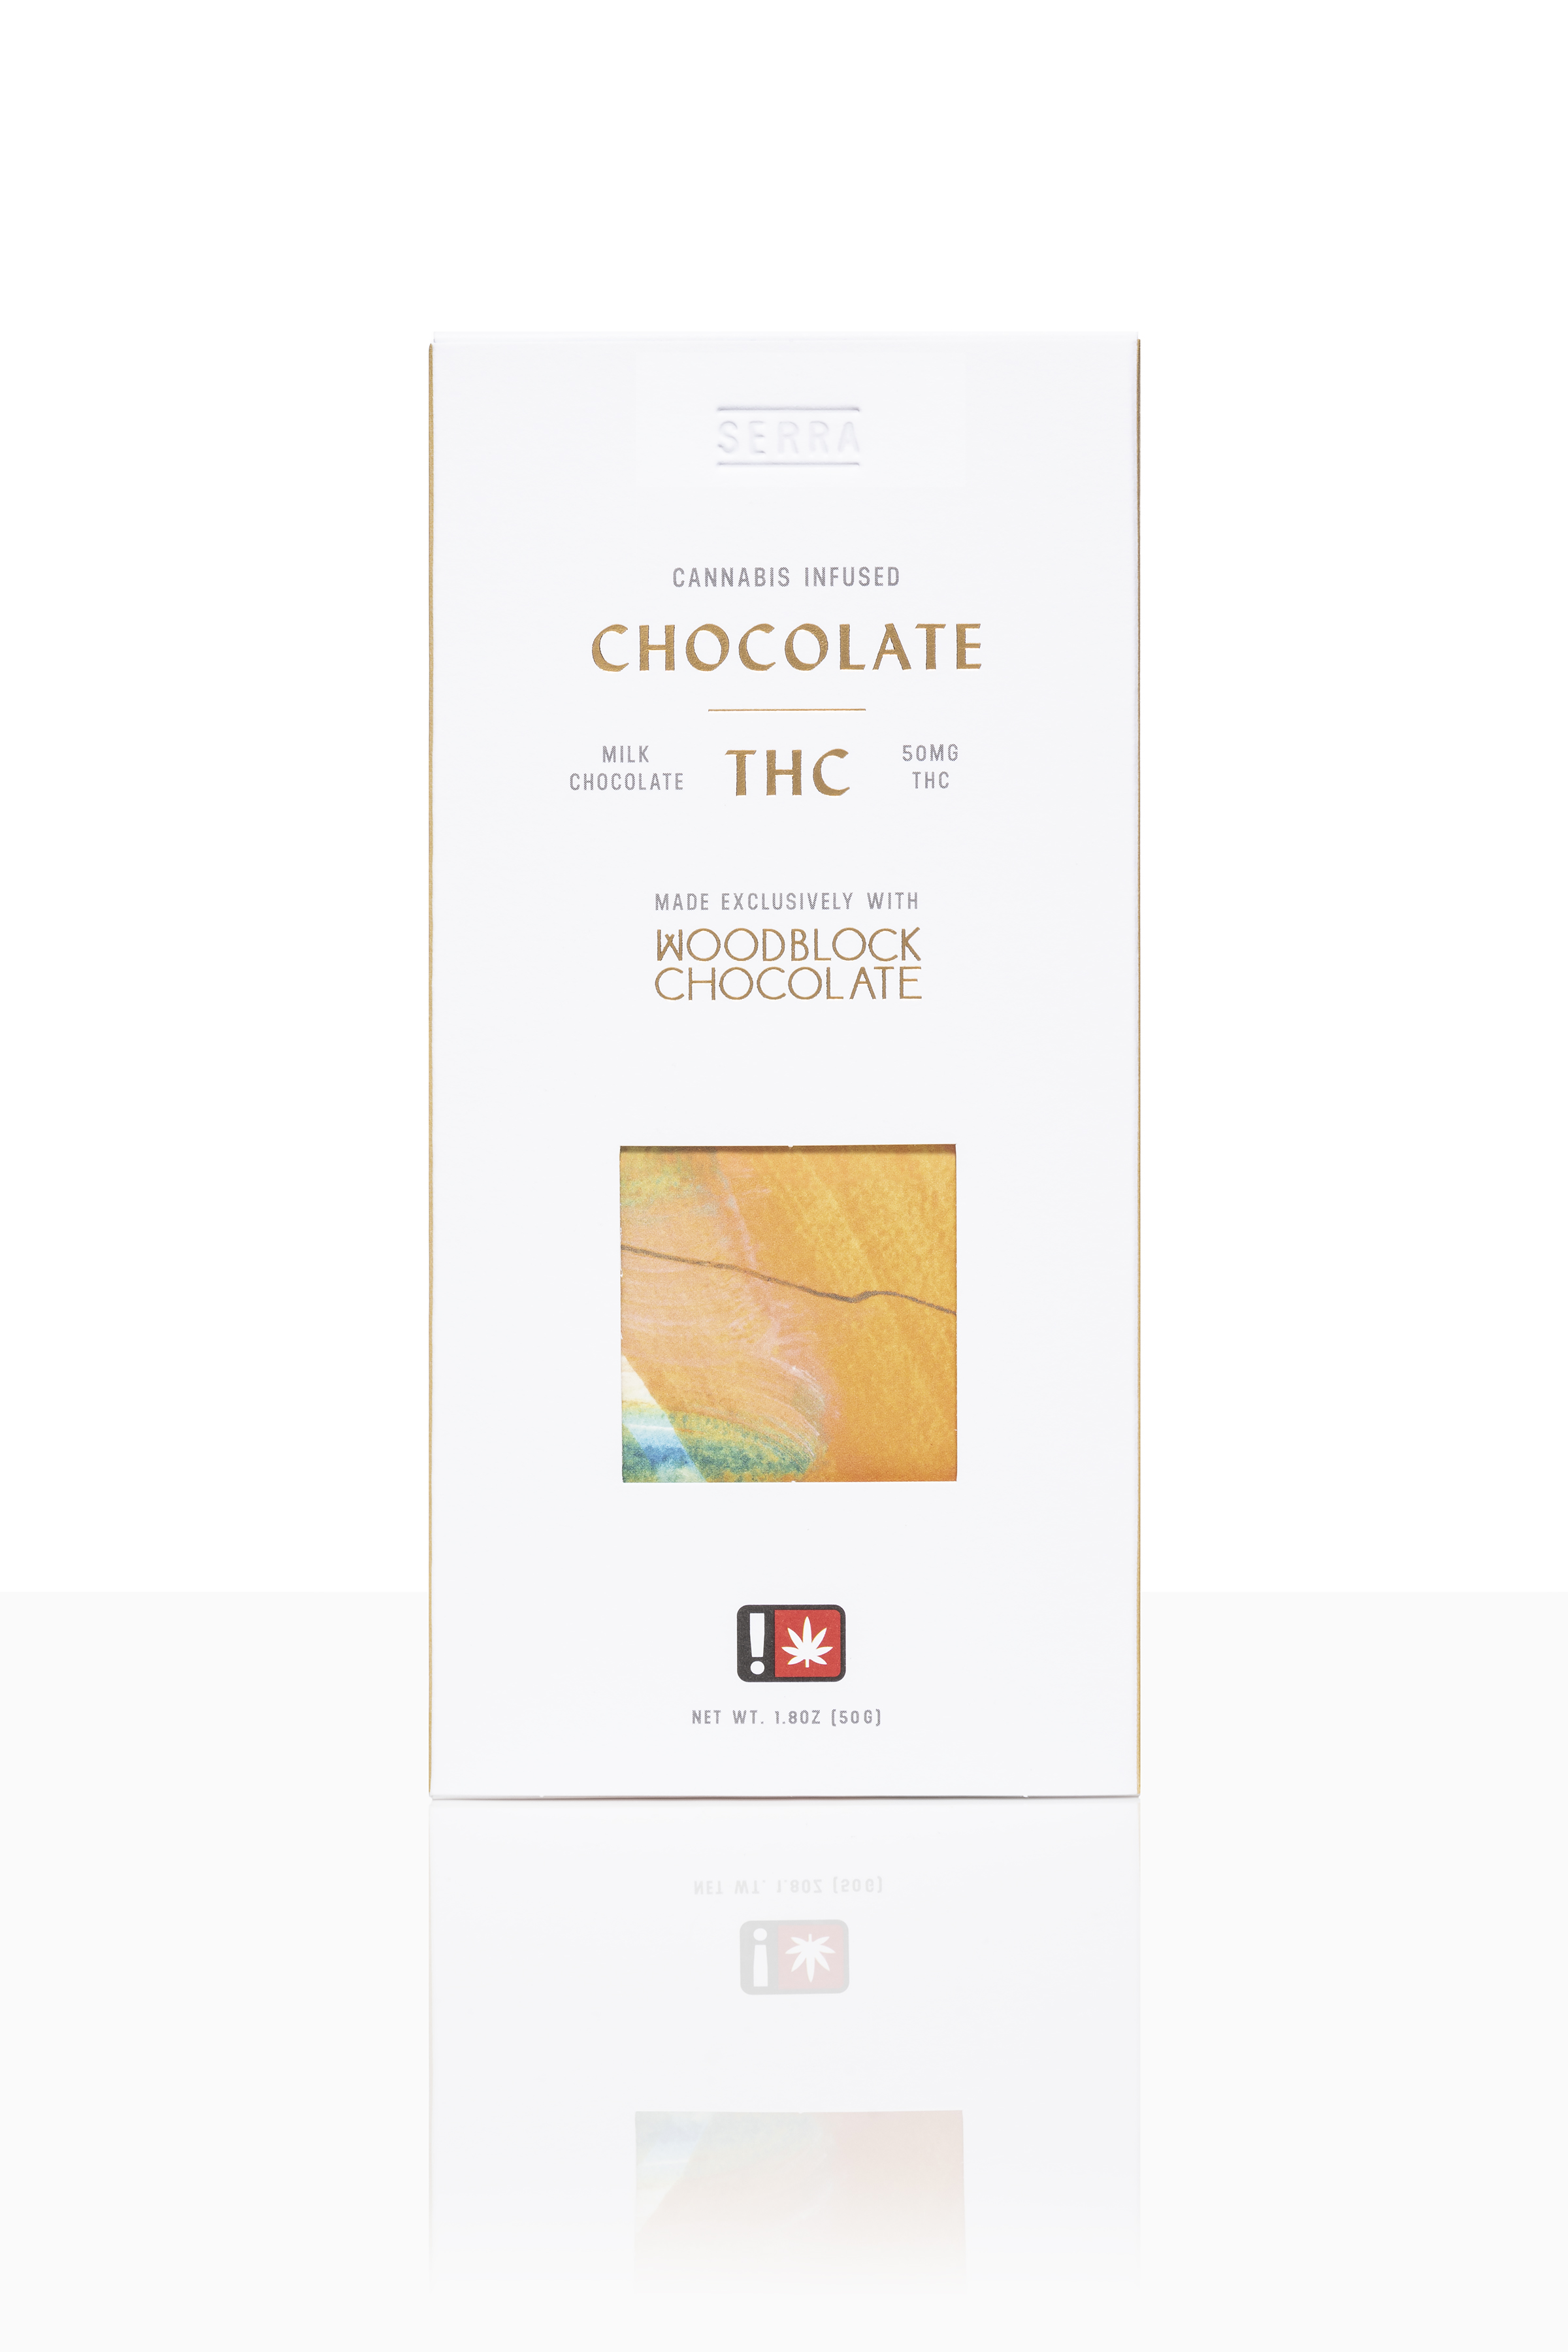 THC Milk Chocolate - Stable Relaxation.A smooth 45% milk chocolate made with Tanzanian and Ecuadorian cacao. Brightened by floral notes and a hint of caramel.Gluten-Free.50mg THC per large bar. 10 servings per large bar.20mg THC per small bar. 4 servings per small bar.